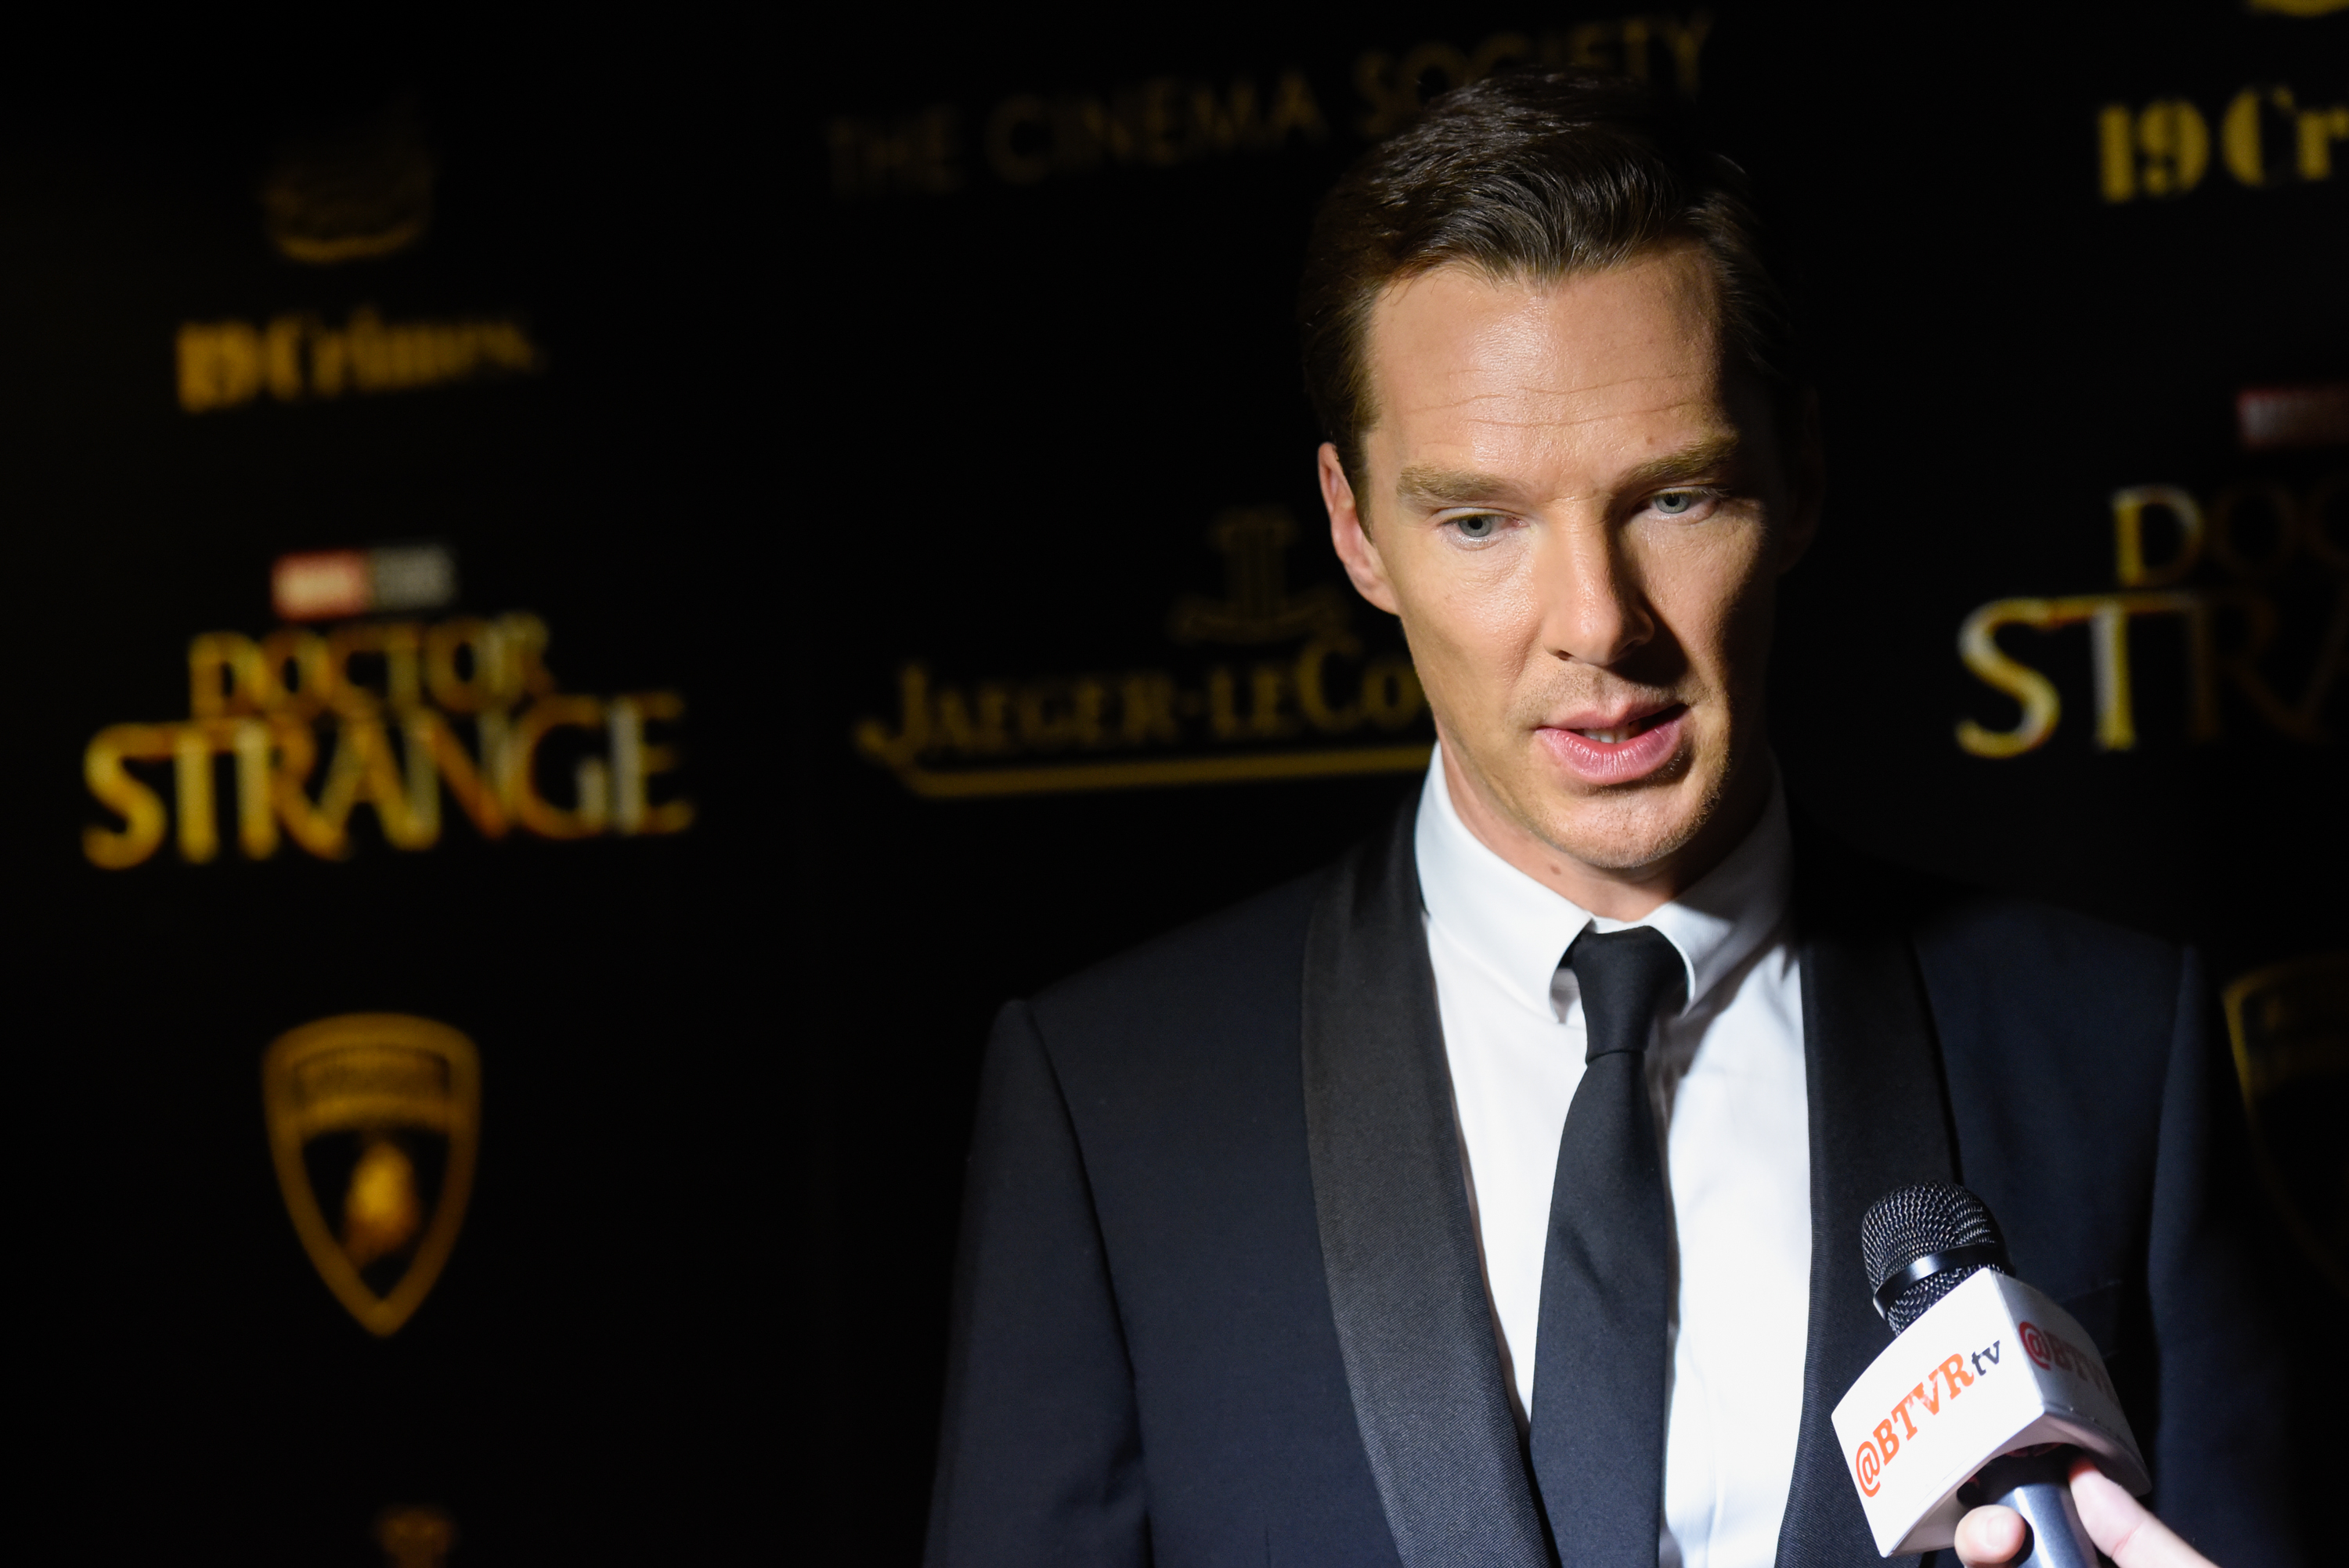 """Lamborghini With The Cinema Society, Jaeger-LeCoultre & 19 Crimes Wines Host A Screening Of Marvel Studios' """"Doctor Strange"""" - Arrivals"""